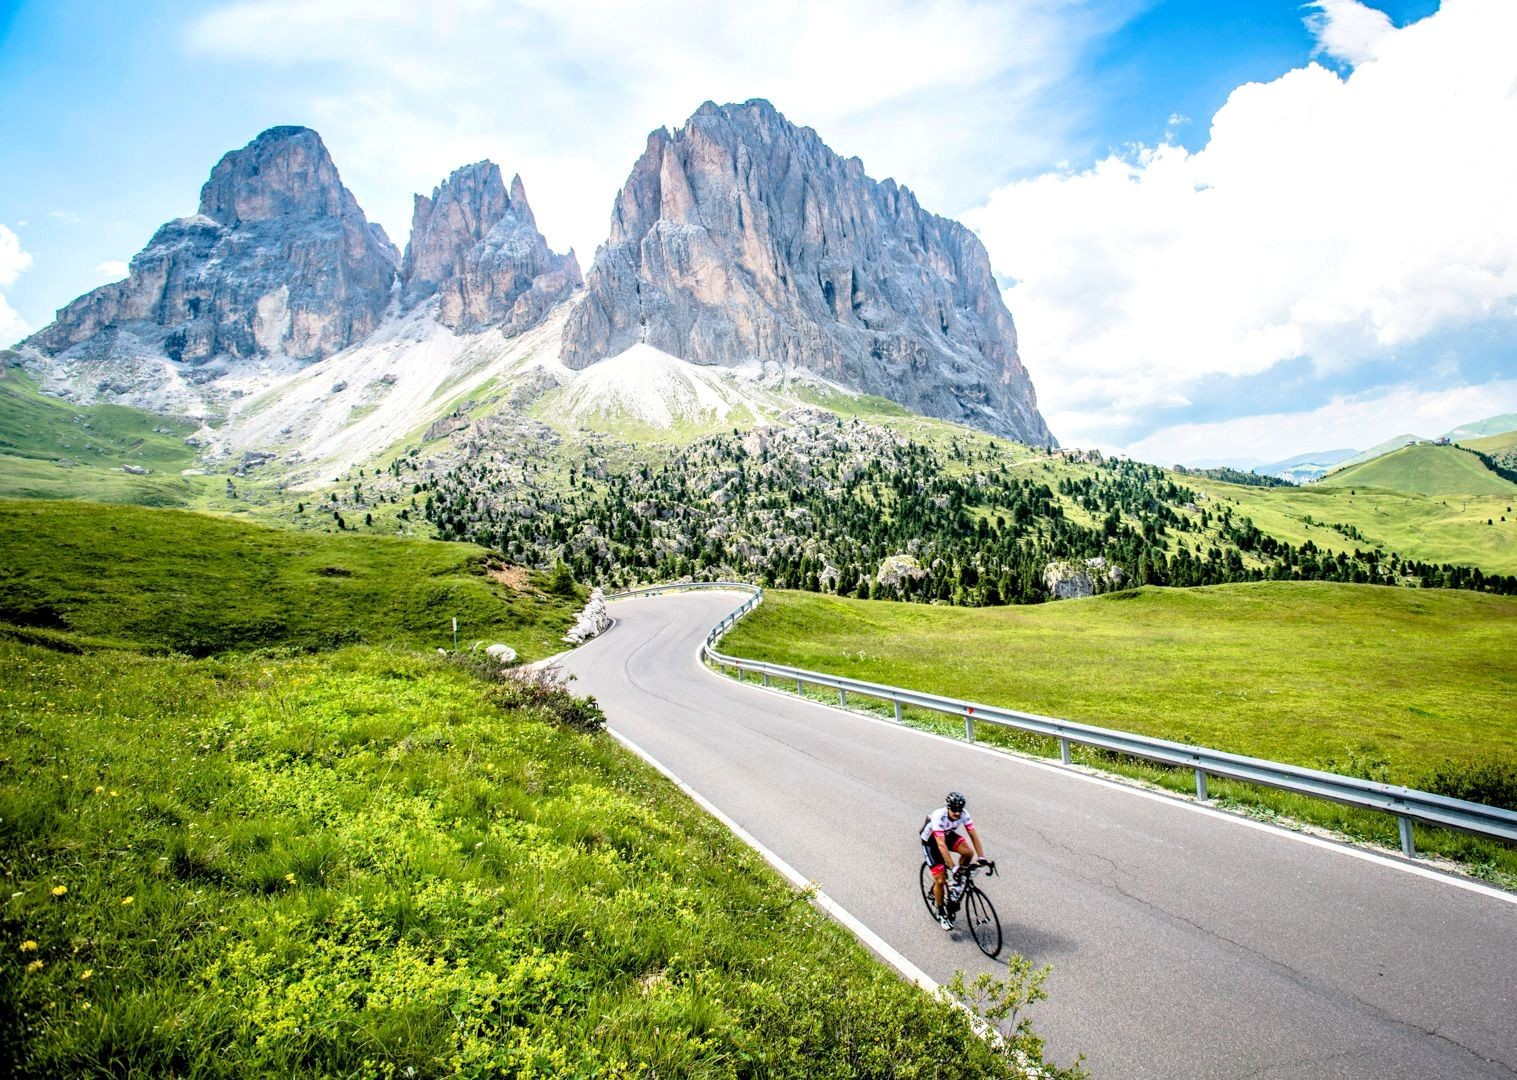 dolomites-guided-road-cycling-holiday-in-italy.jpg - Italy - Alps and Dolomites - Giants of the Giro - Guided Road Cycling Holiday - Road Cycling